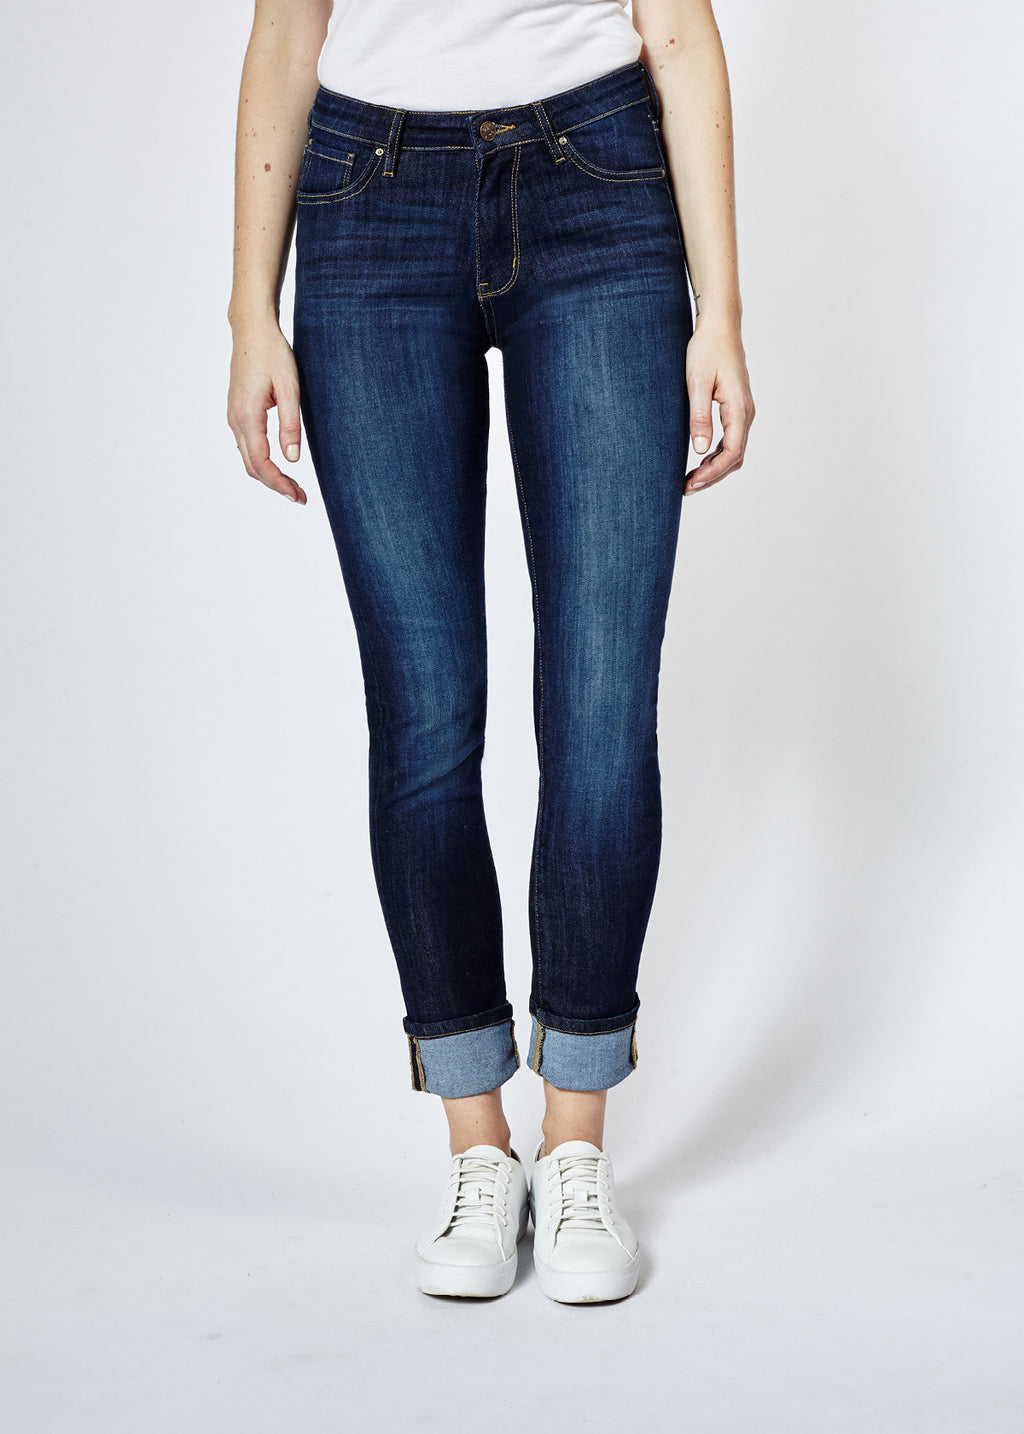 Performance Stretch Classic Indigo Straight & Narrow Denim